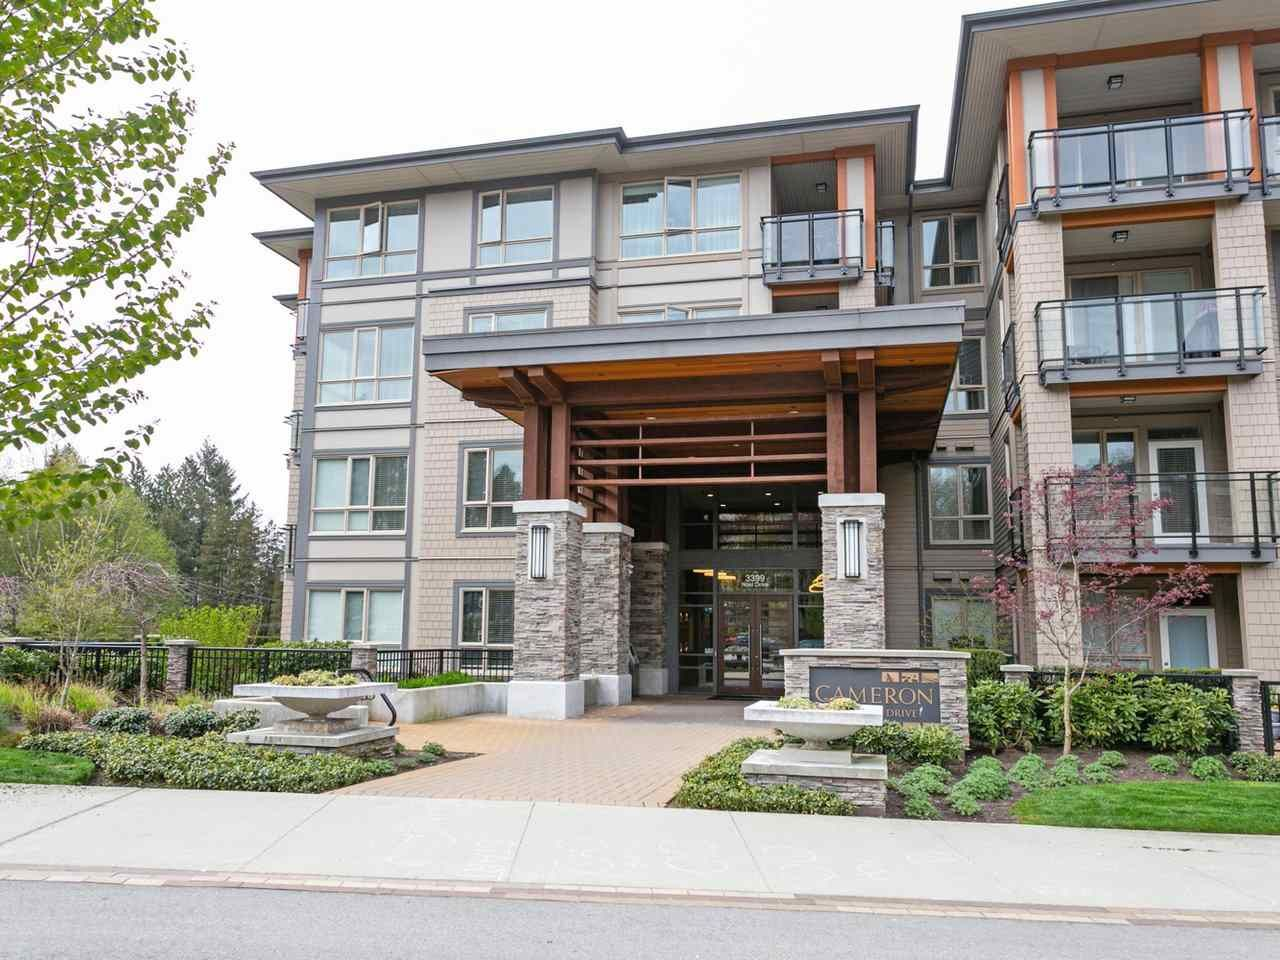 """Main Photo: 211 3399 NOEL Drive in Burnaby: Sullivan Heights Condo for sale in """"CAMERON"""" (Burnaby North)  : MLS®# R2465888"""